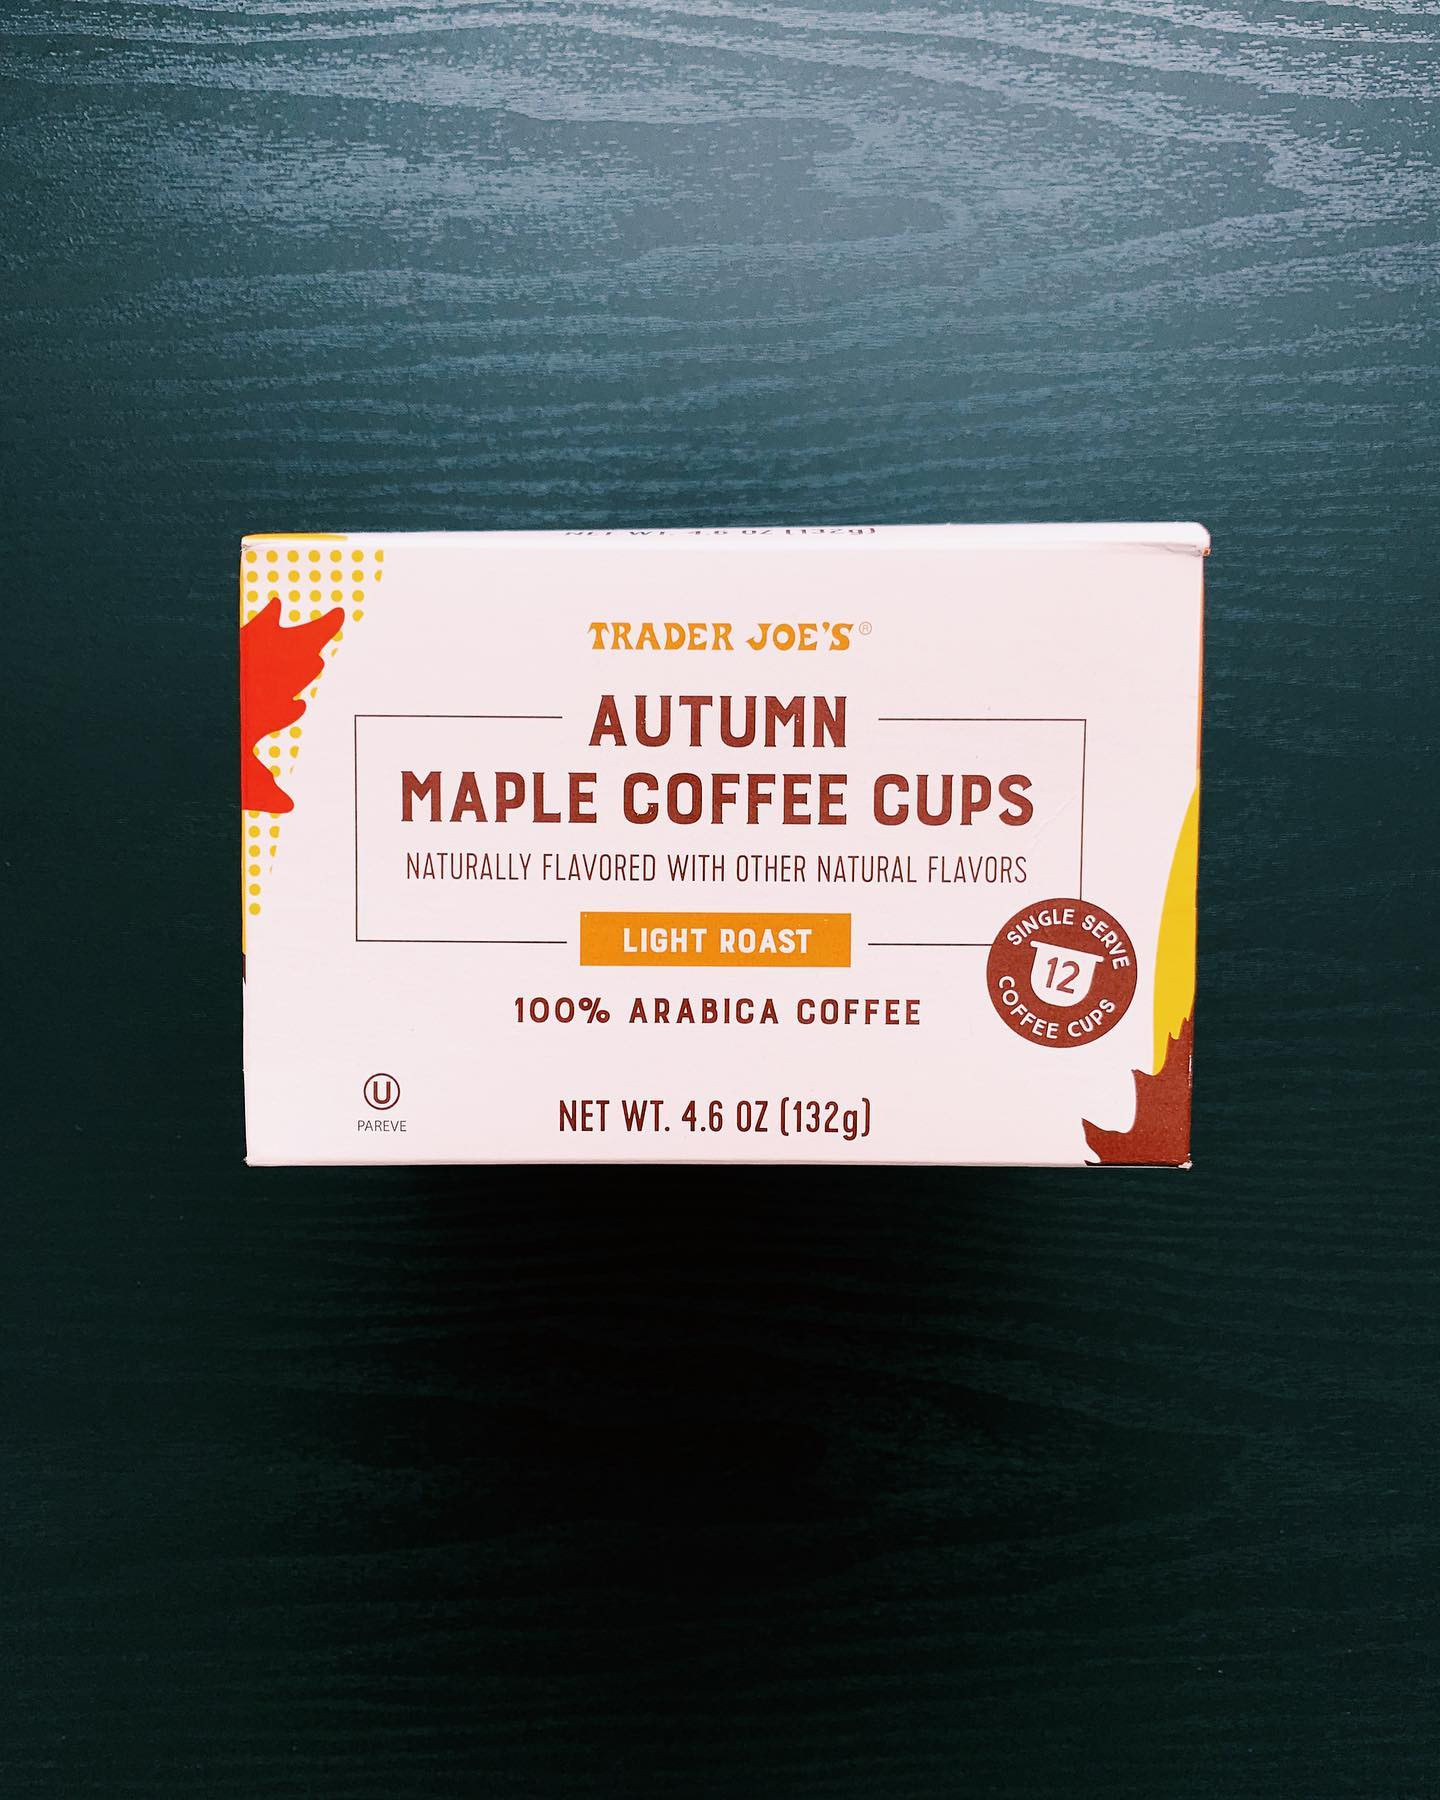 Autumn Maple Coffee Cups: 8/10